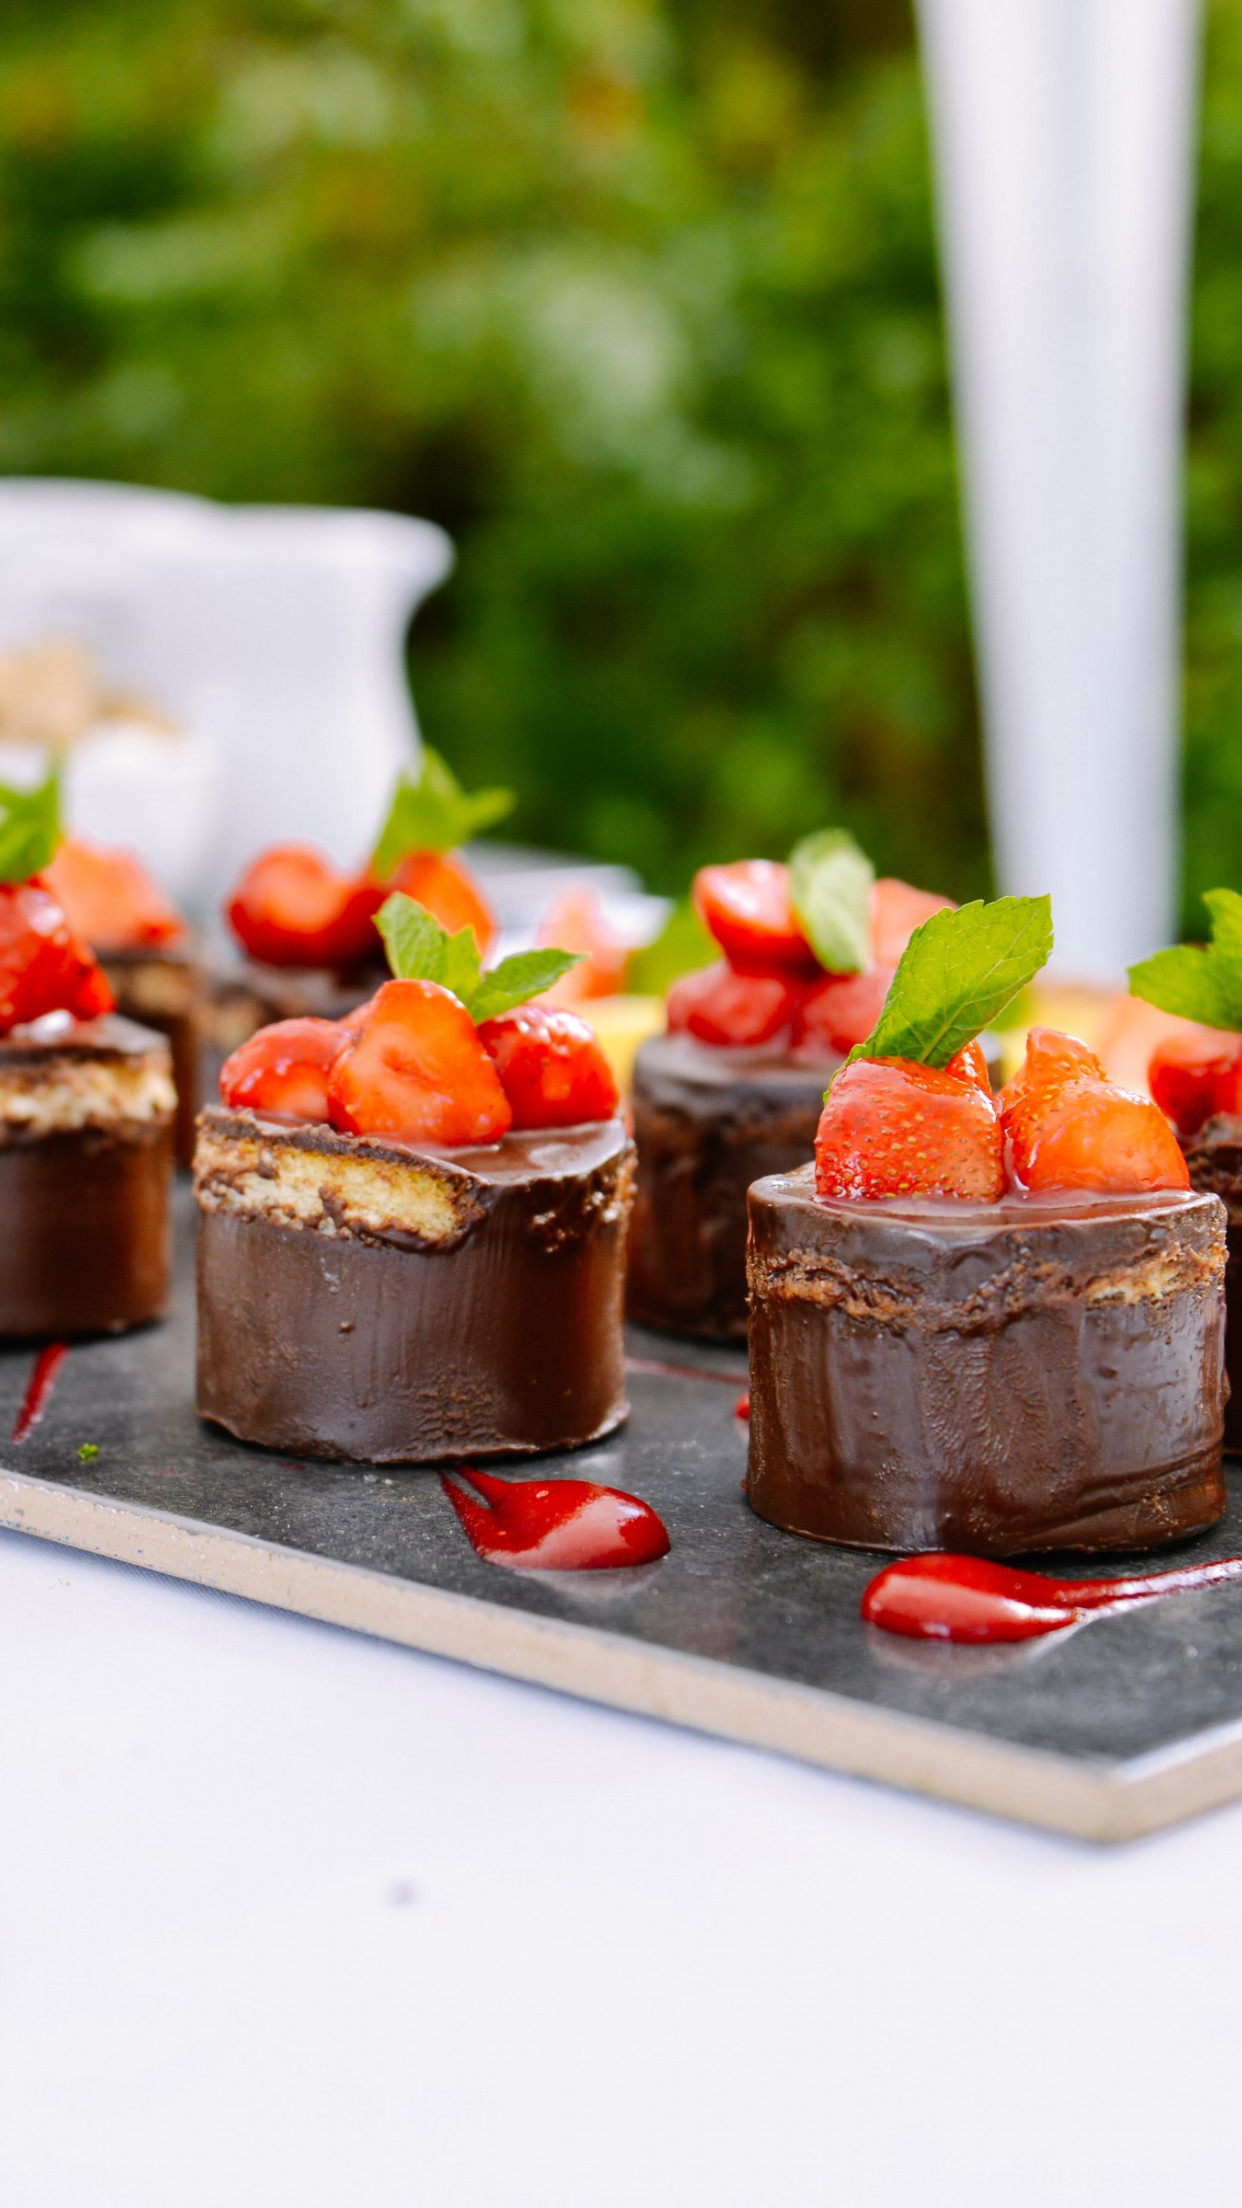 Chocolate cakes with strawberries wallpaper 1242x2208